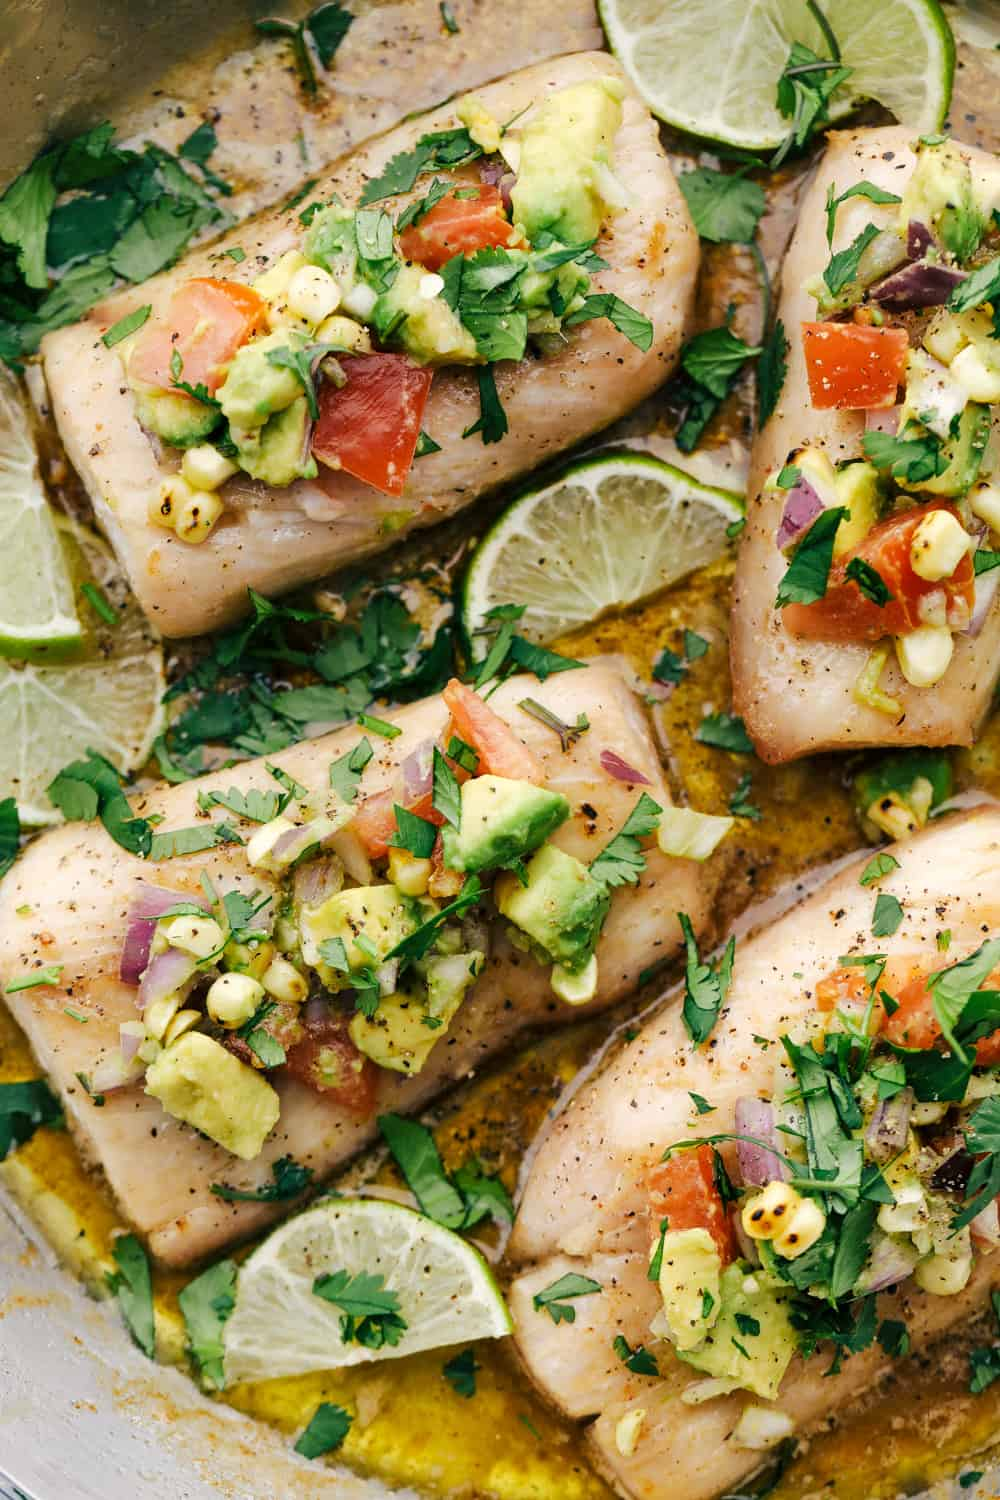 Mahi Mahi filets ina skillet with the brown butter sauce and garnished with avocado salsa with lime wedges in the skillet.